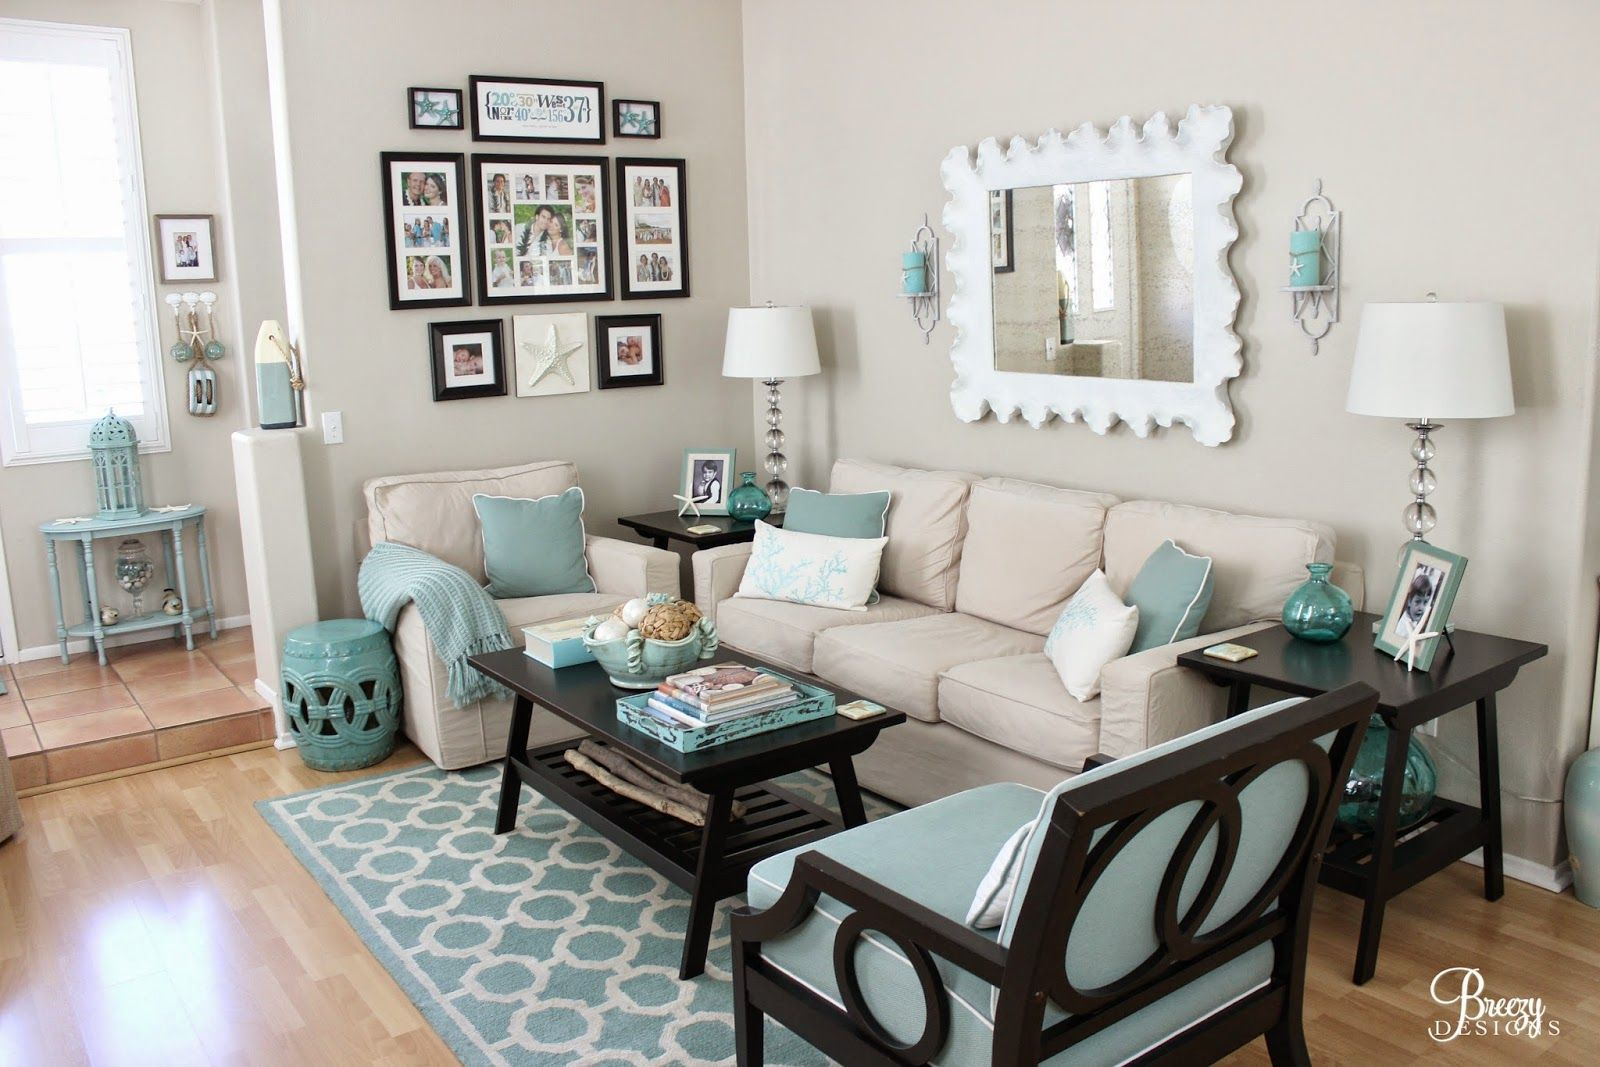 Attractive Turquoise Dining Room Ideas, Turquoise Rooms, Turquoise Living Room  Accessories, Using Turquoise In Decorating, Decorating With Turquoise  Accents, ...